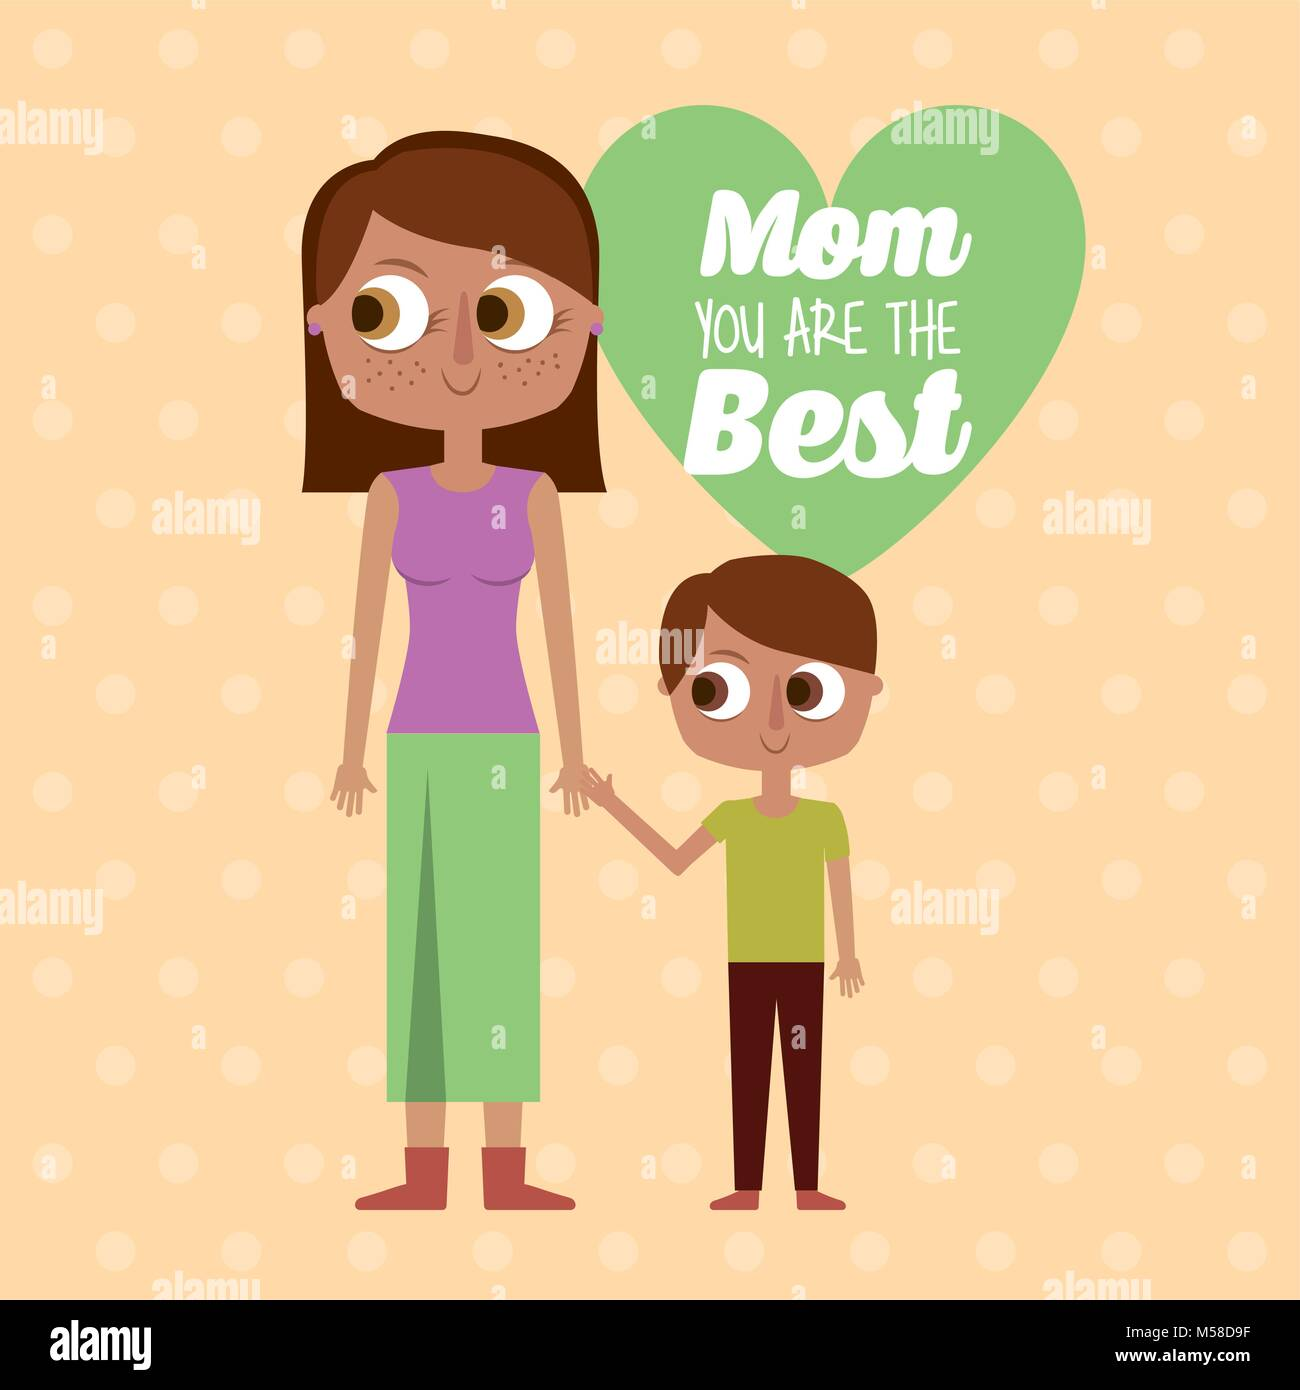 Mom you are the best greeting card mother and son together stock mom you are the best greeting card mother and son together kristyandbryce Image collections